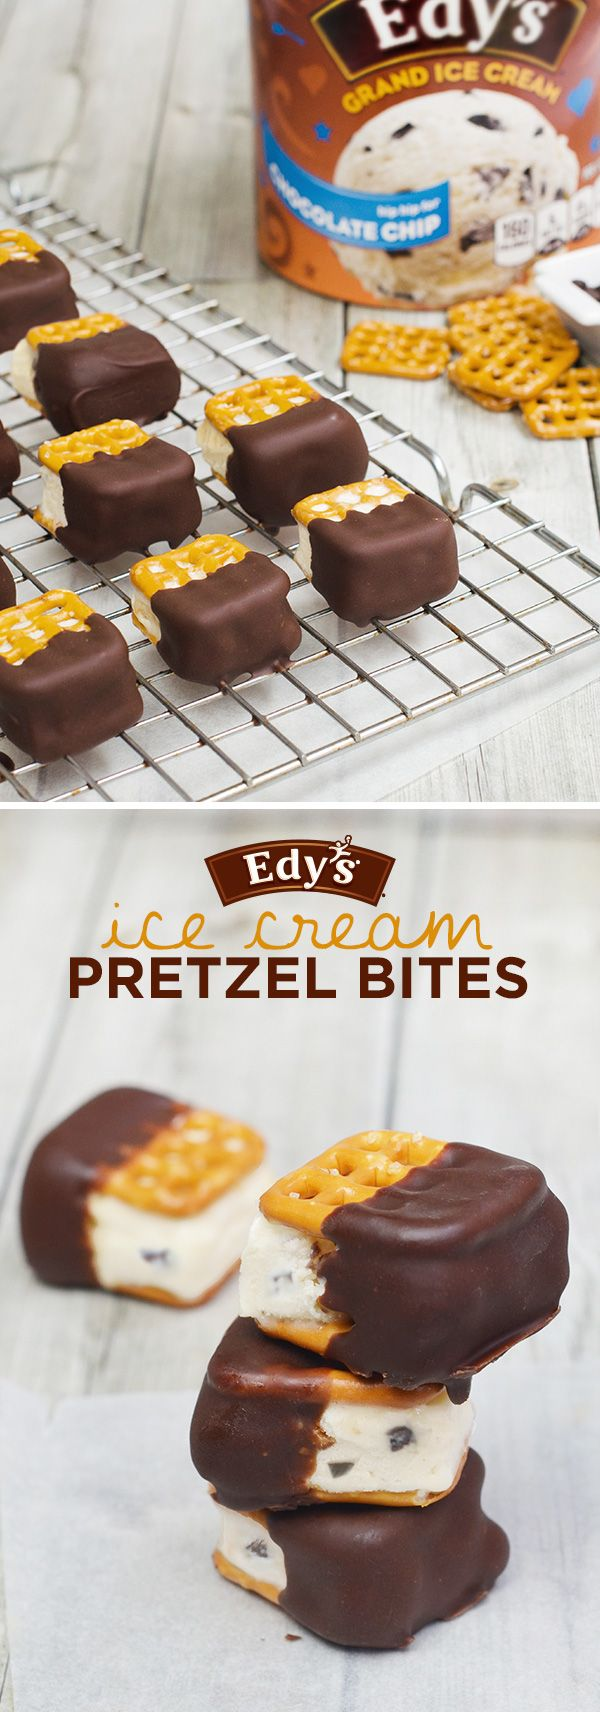 Edy's Ice Cream Pretzel Bites: A mini scoop of Edy's Grand Chocolate Chip Ice Cream looks so tasty between two bite-sized waffle pretzels. Jazz them up a bit by dipping each piece halfway into chocolate; then place them on a cookie rack and refreeze. Don't forget to share this delicious dessert recipe with your family this summer.